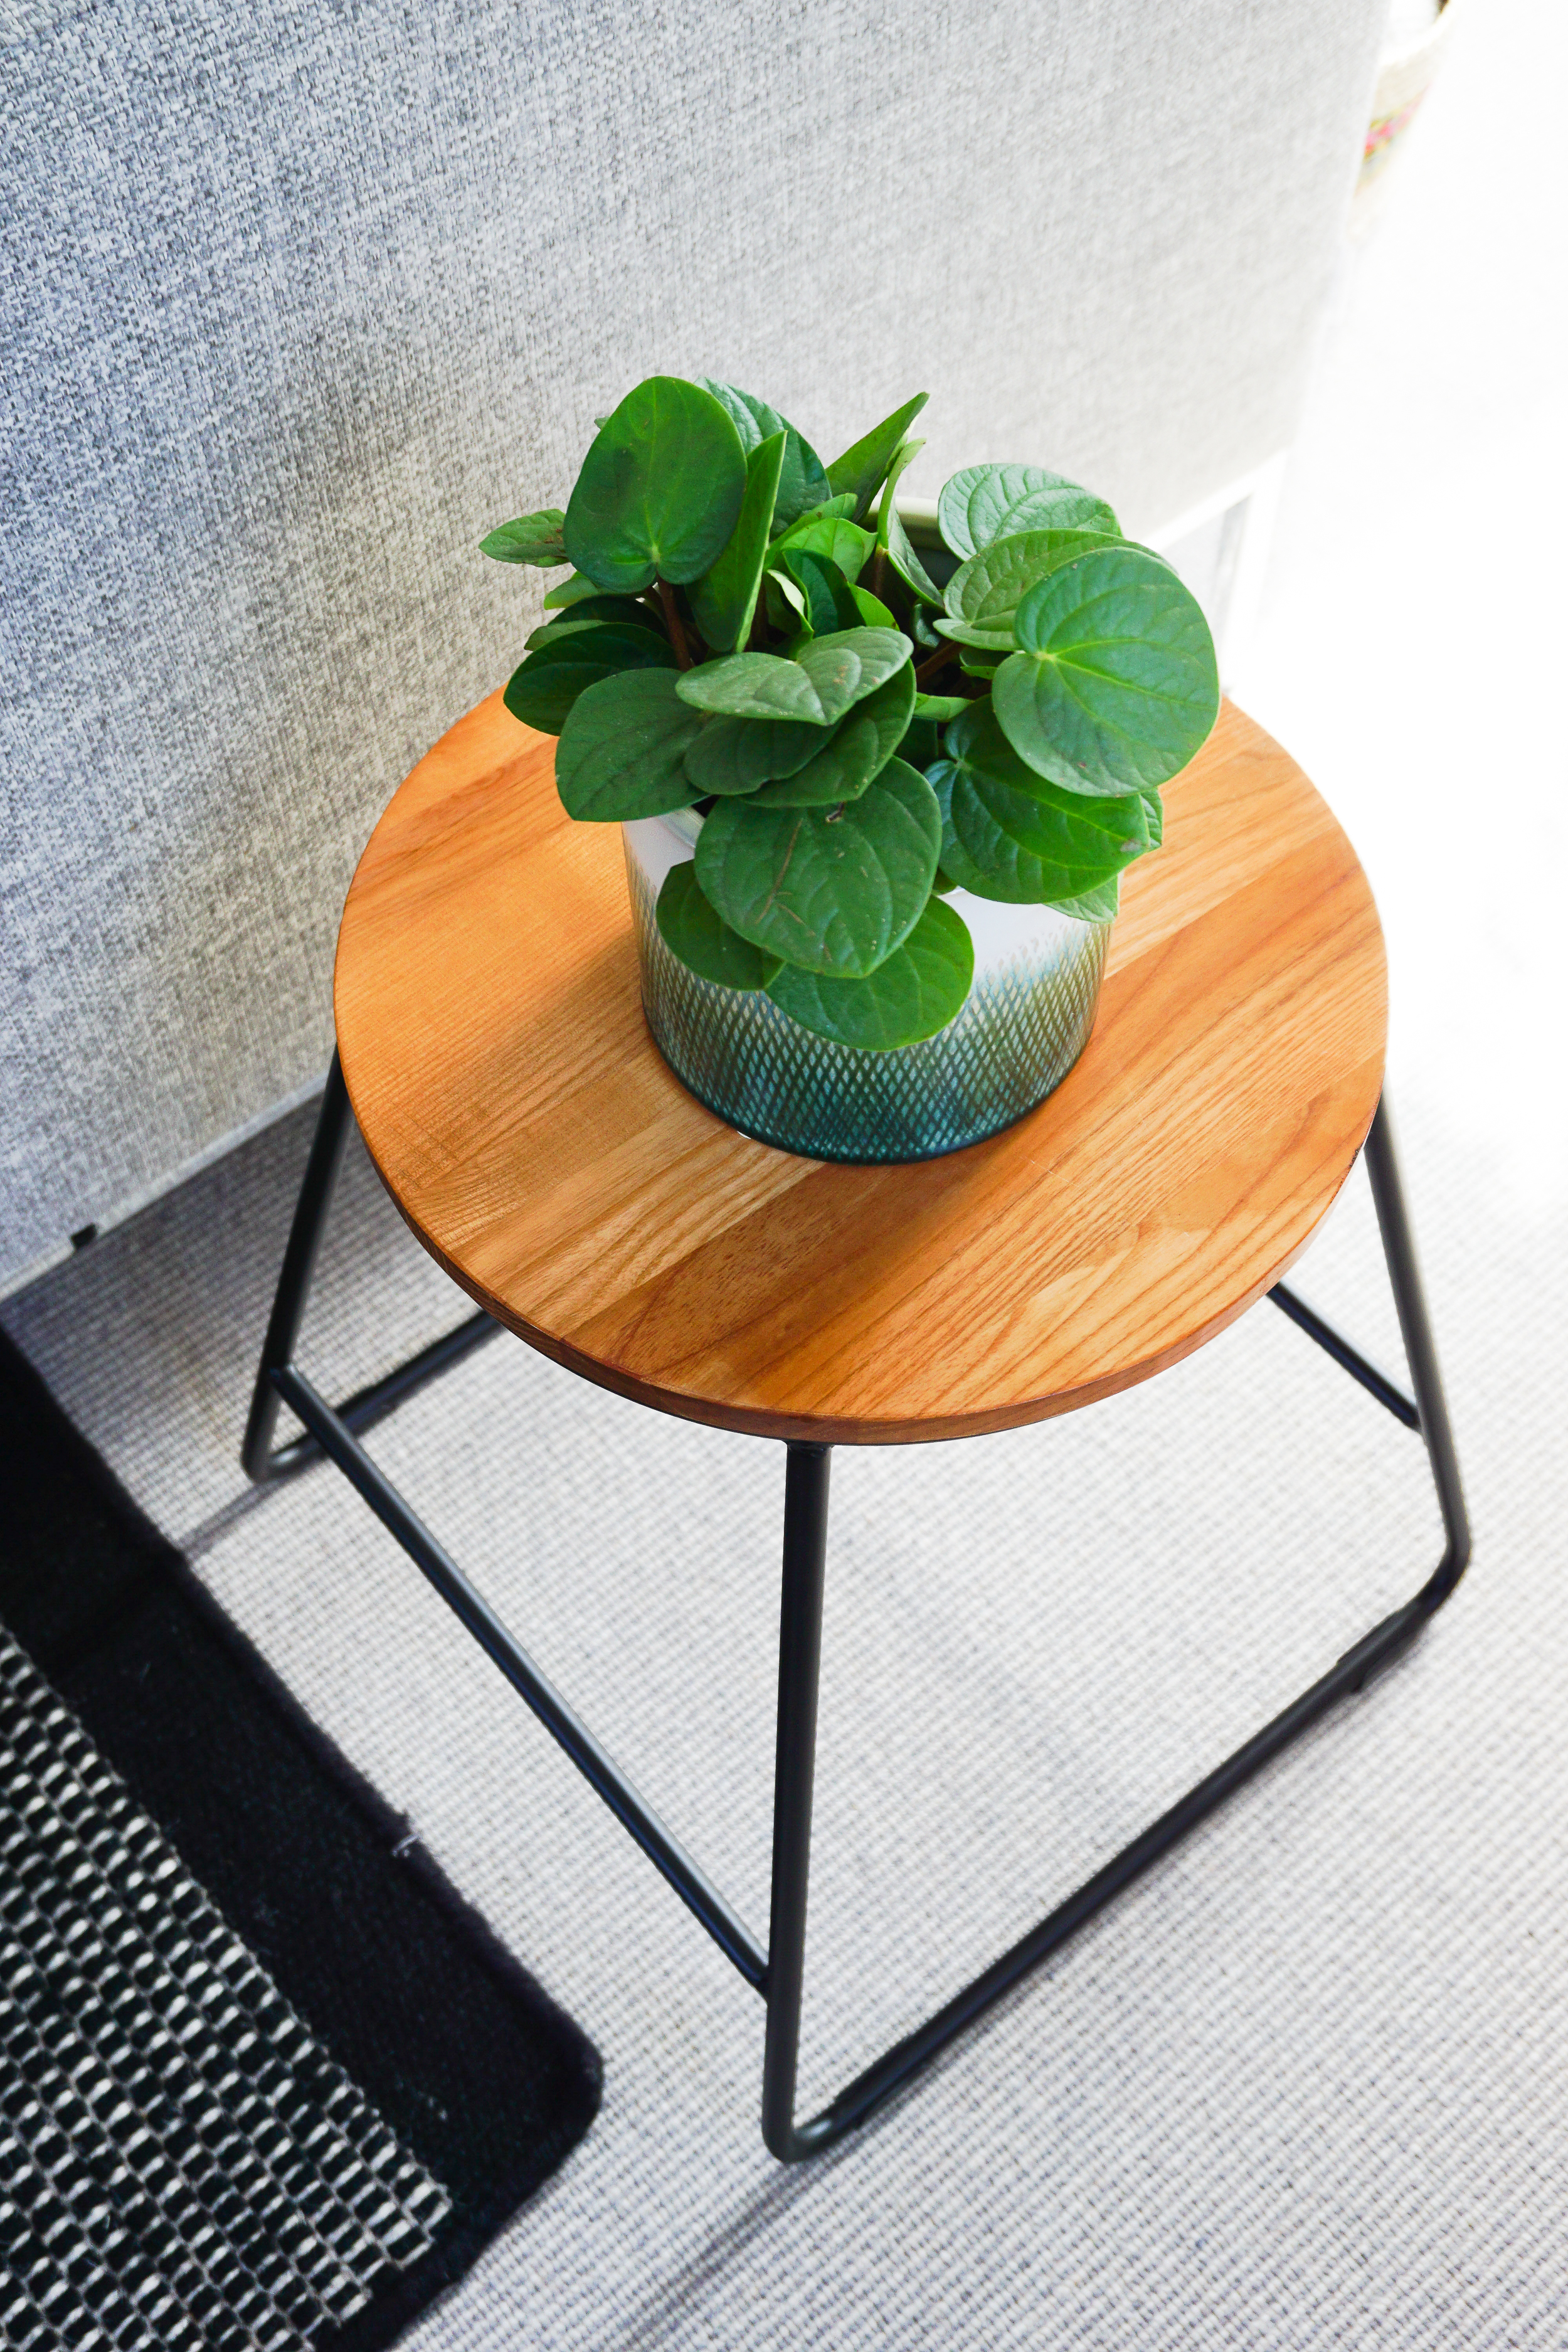 The best industrial-style stool for just £10